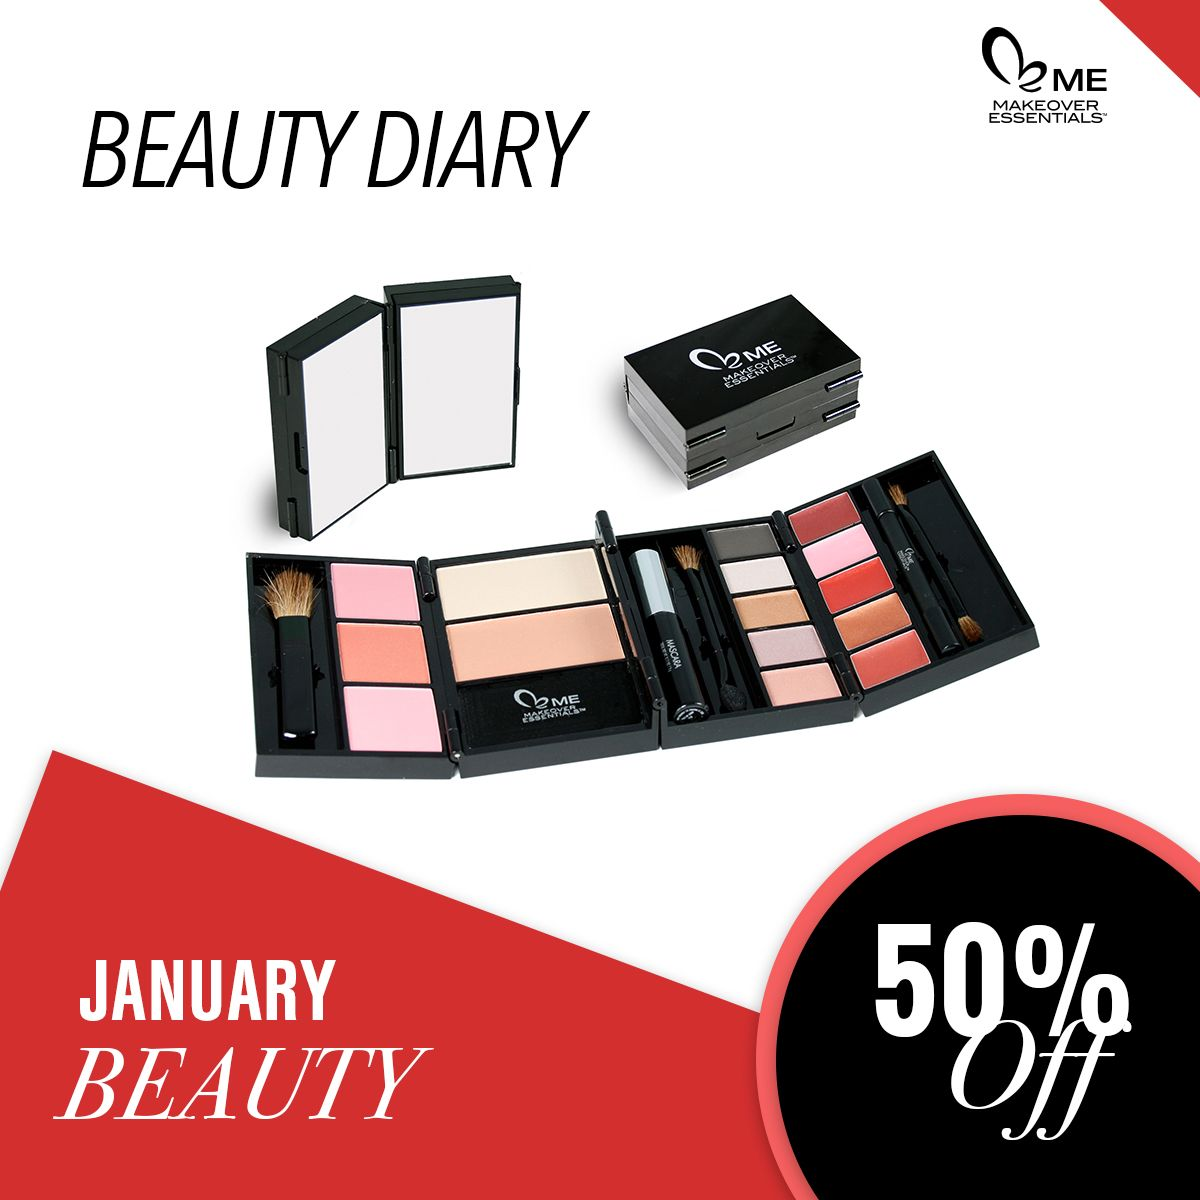 Makeover Essentials Reviews Makeup Cosmetics Me Cosmetics Trends Affordable Beauty Style Http Makeover Essent Makeover Essentials My Beauty Makeover